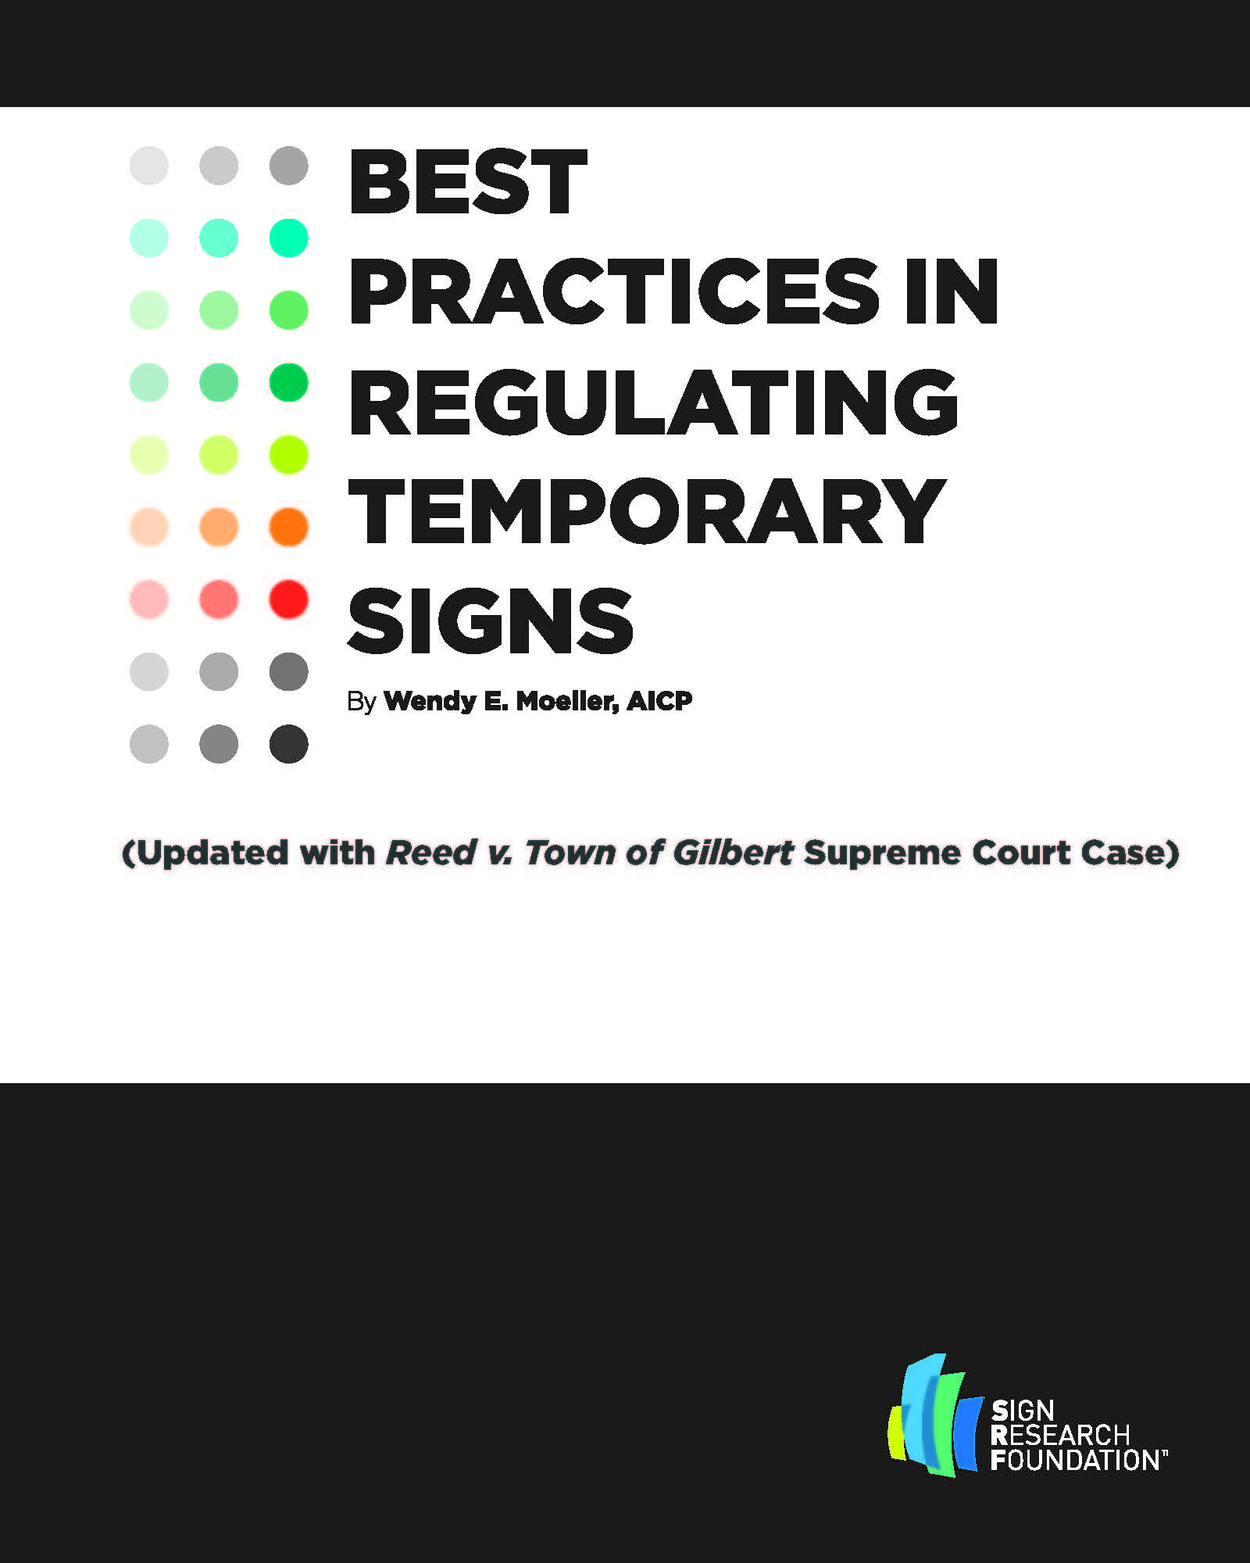 Best Practices in Regulating Temporary Signs SRF